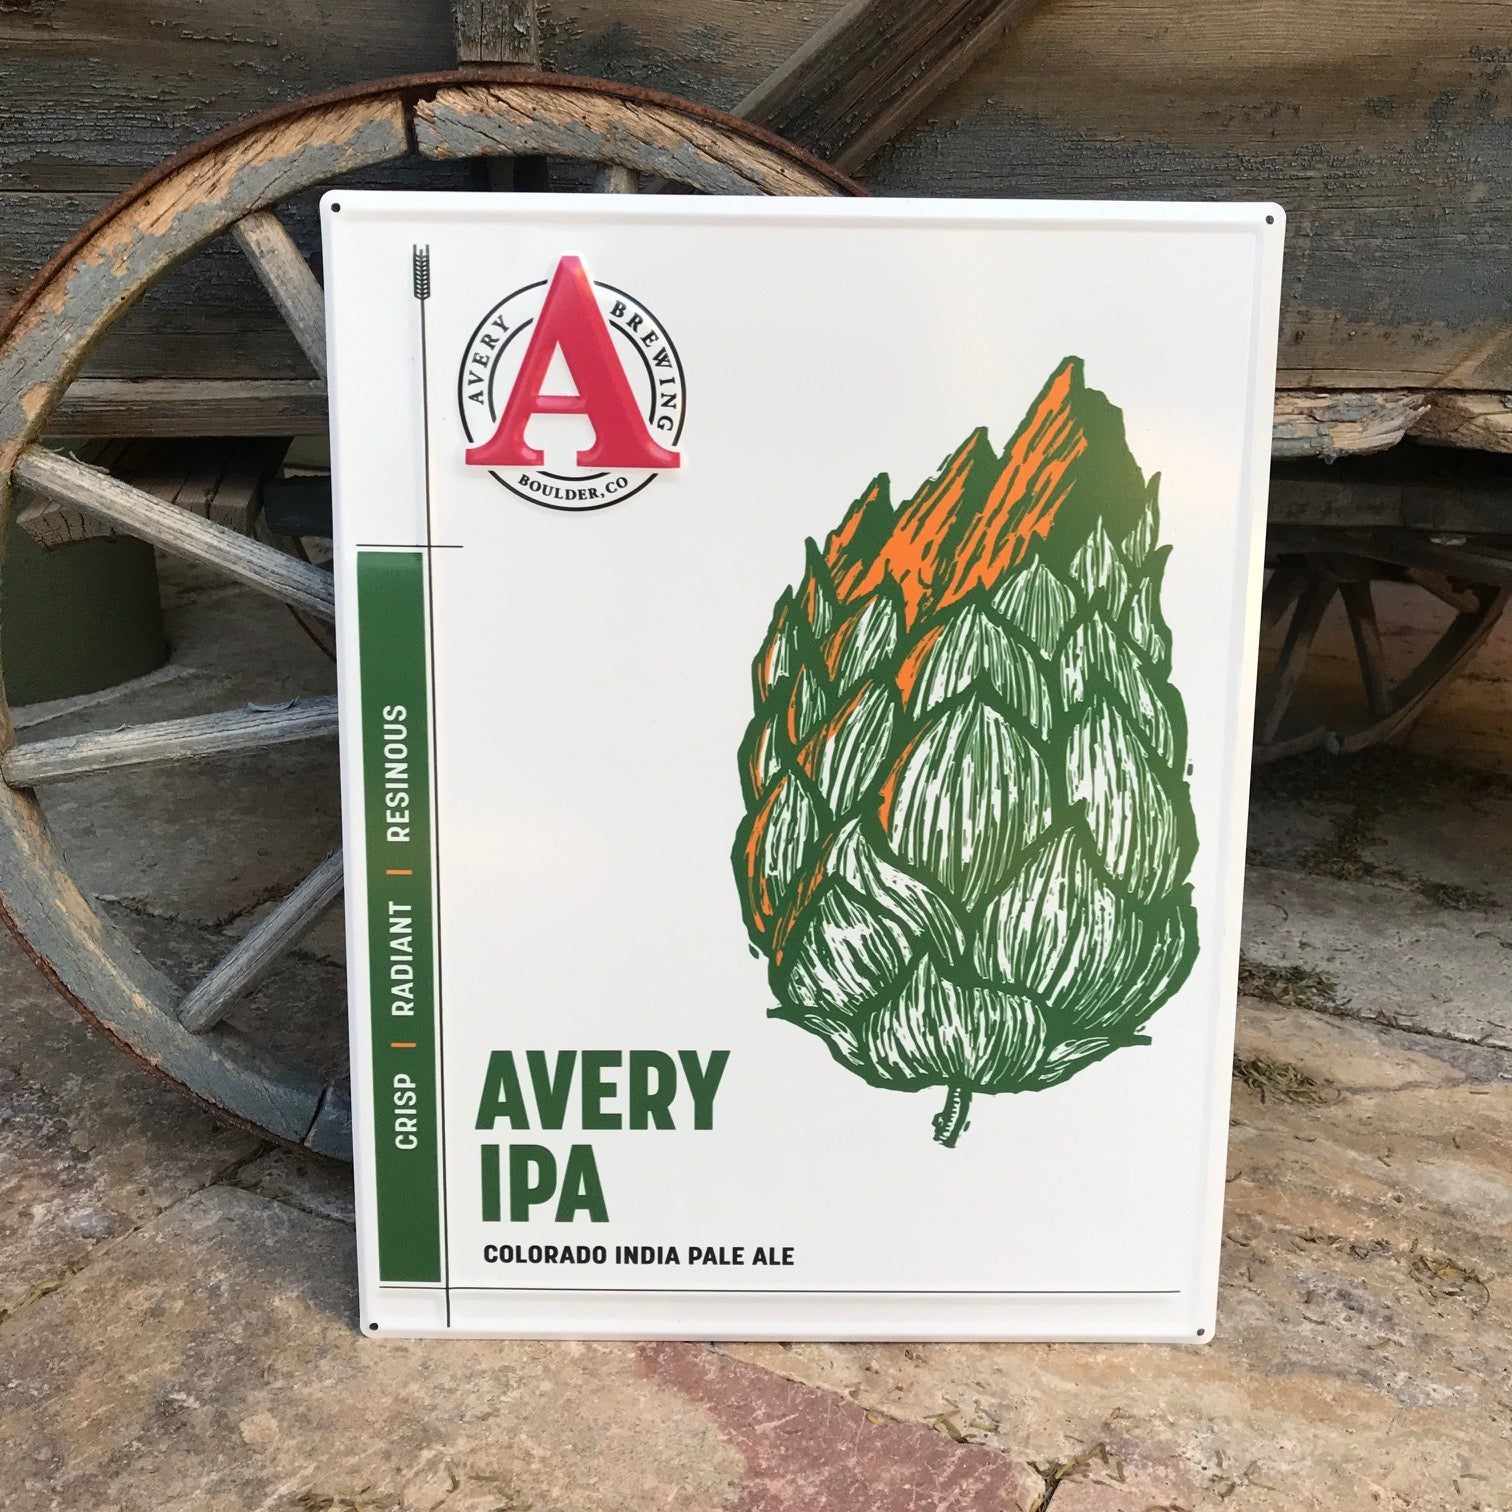 "Avery Brewing Co /""Colorado India Pale Ale/"" Tin Tacker Metal Beer Sign"